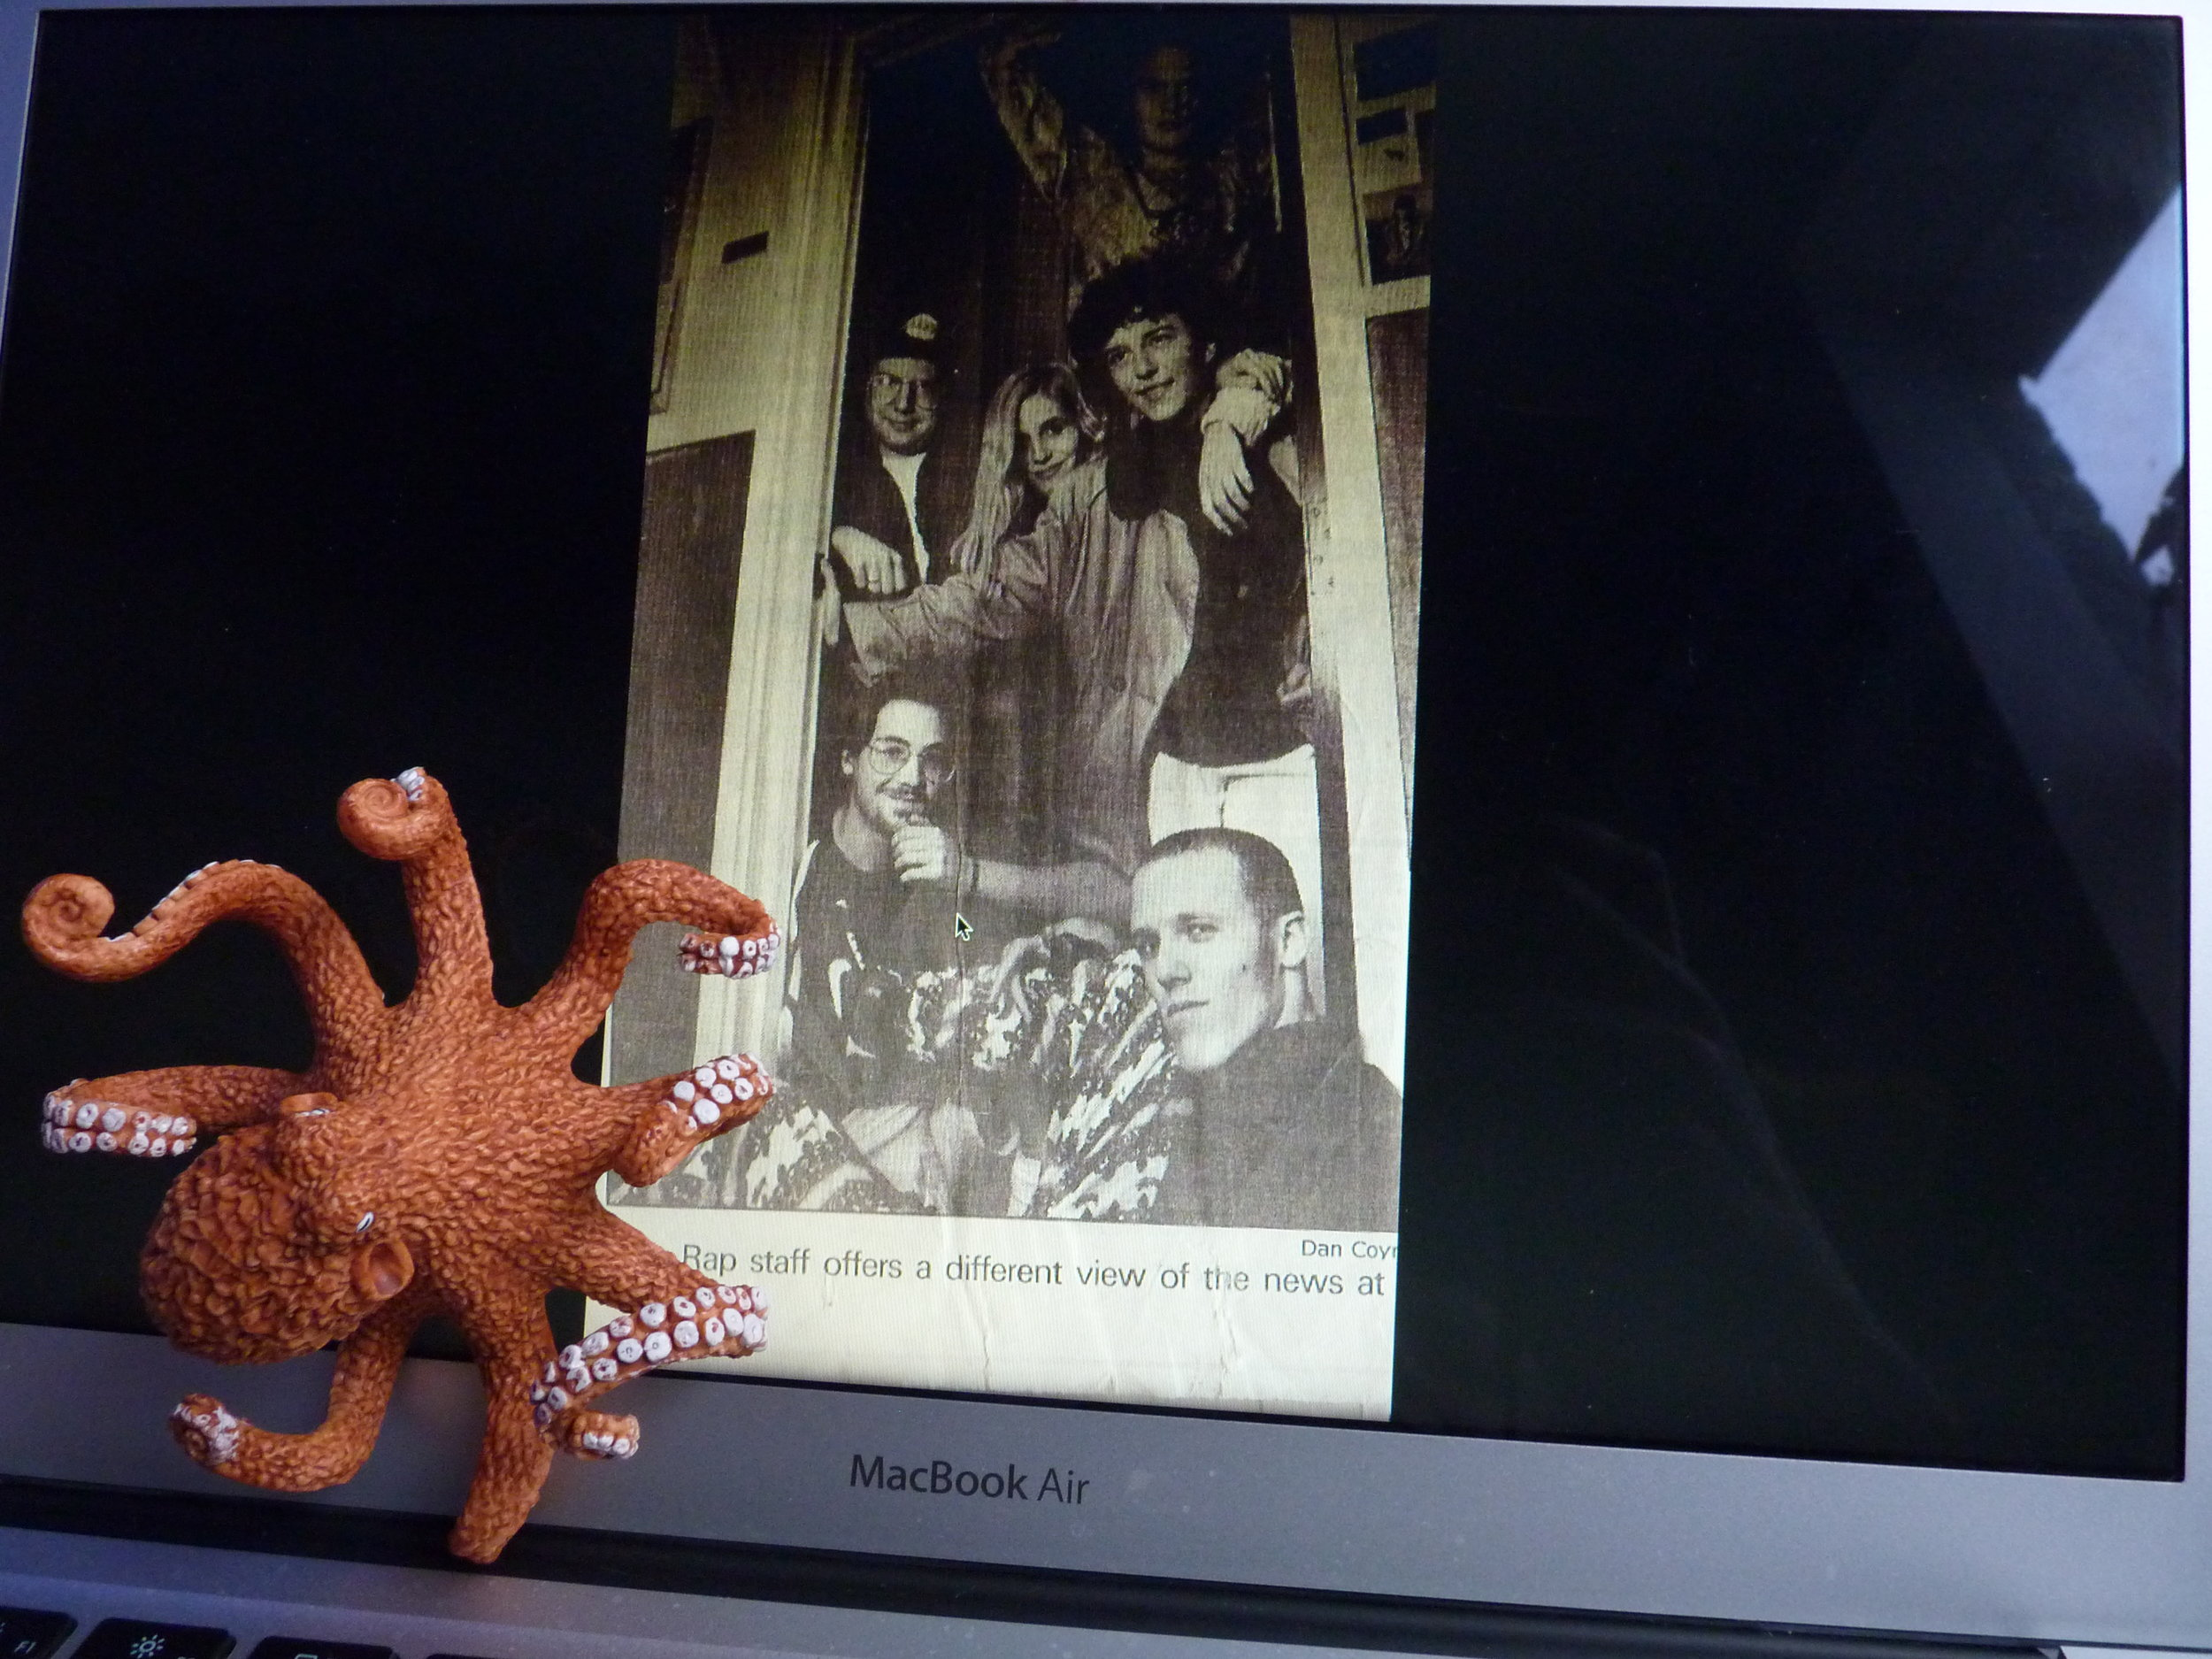 While getting his degree in marine biology from UC Santa Cruz, the octopus fell in with a bad crowd - of journalists, helped to found The Fish Rap Live student newspaper (still going!) and decided to become a writer. Dress sense remained a major problem.